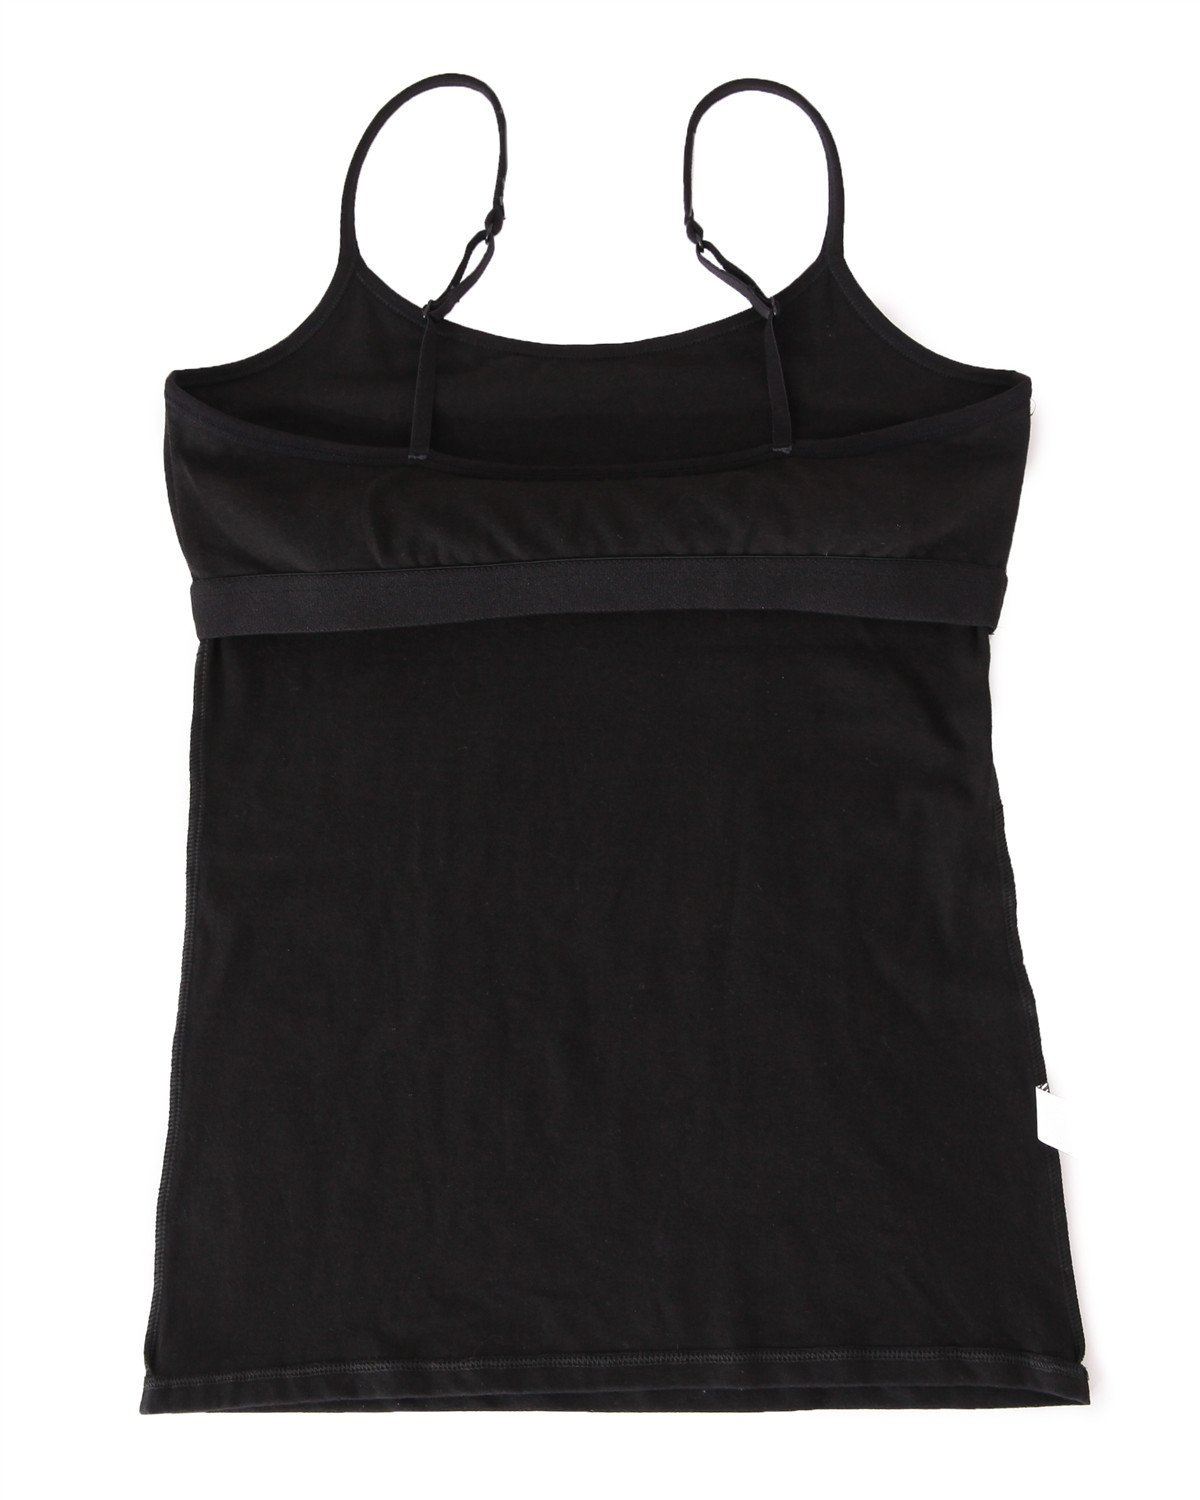 ALove Cotton Cami Tops Women Built in Shelf Bra Casual Camisoles 2 Pack XL by ALove (Image #6)